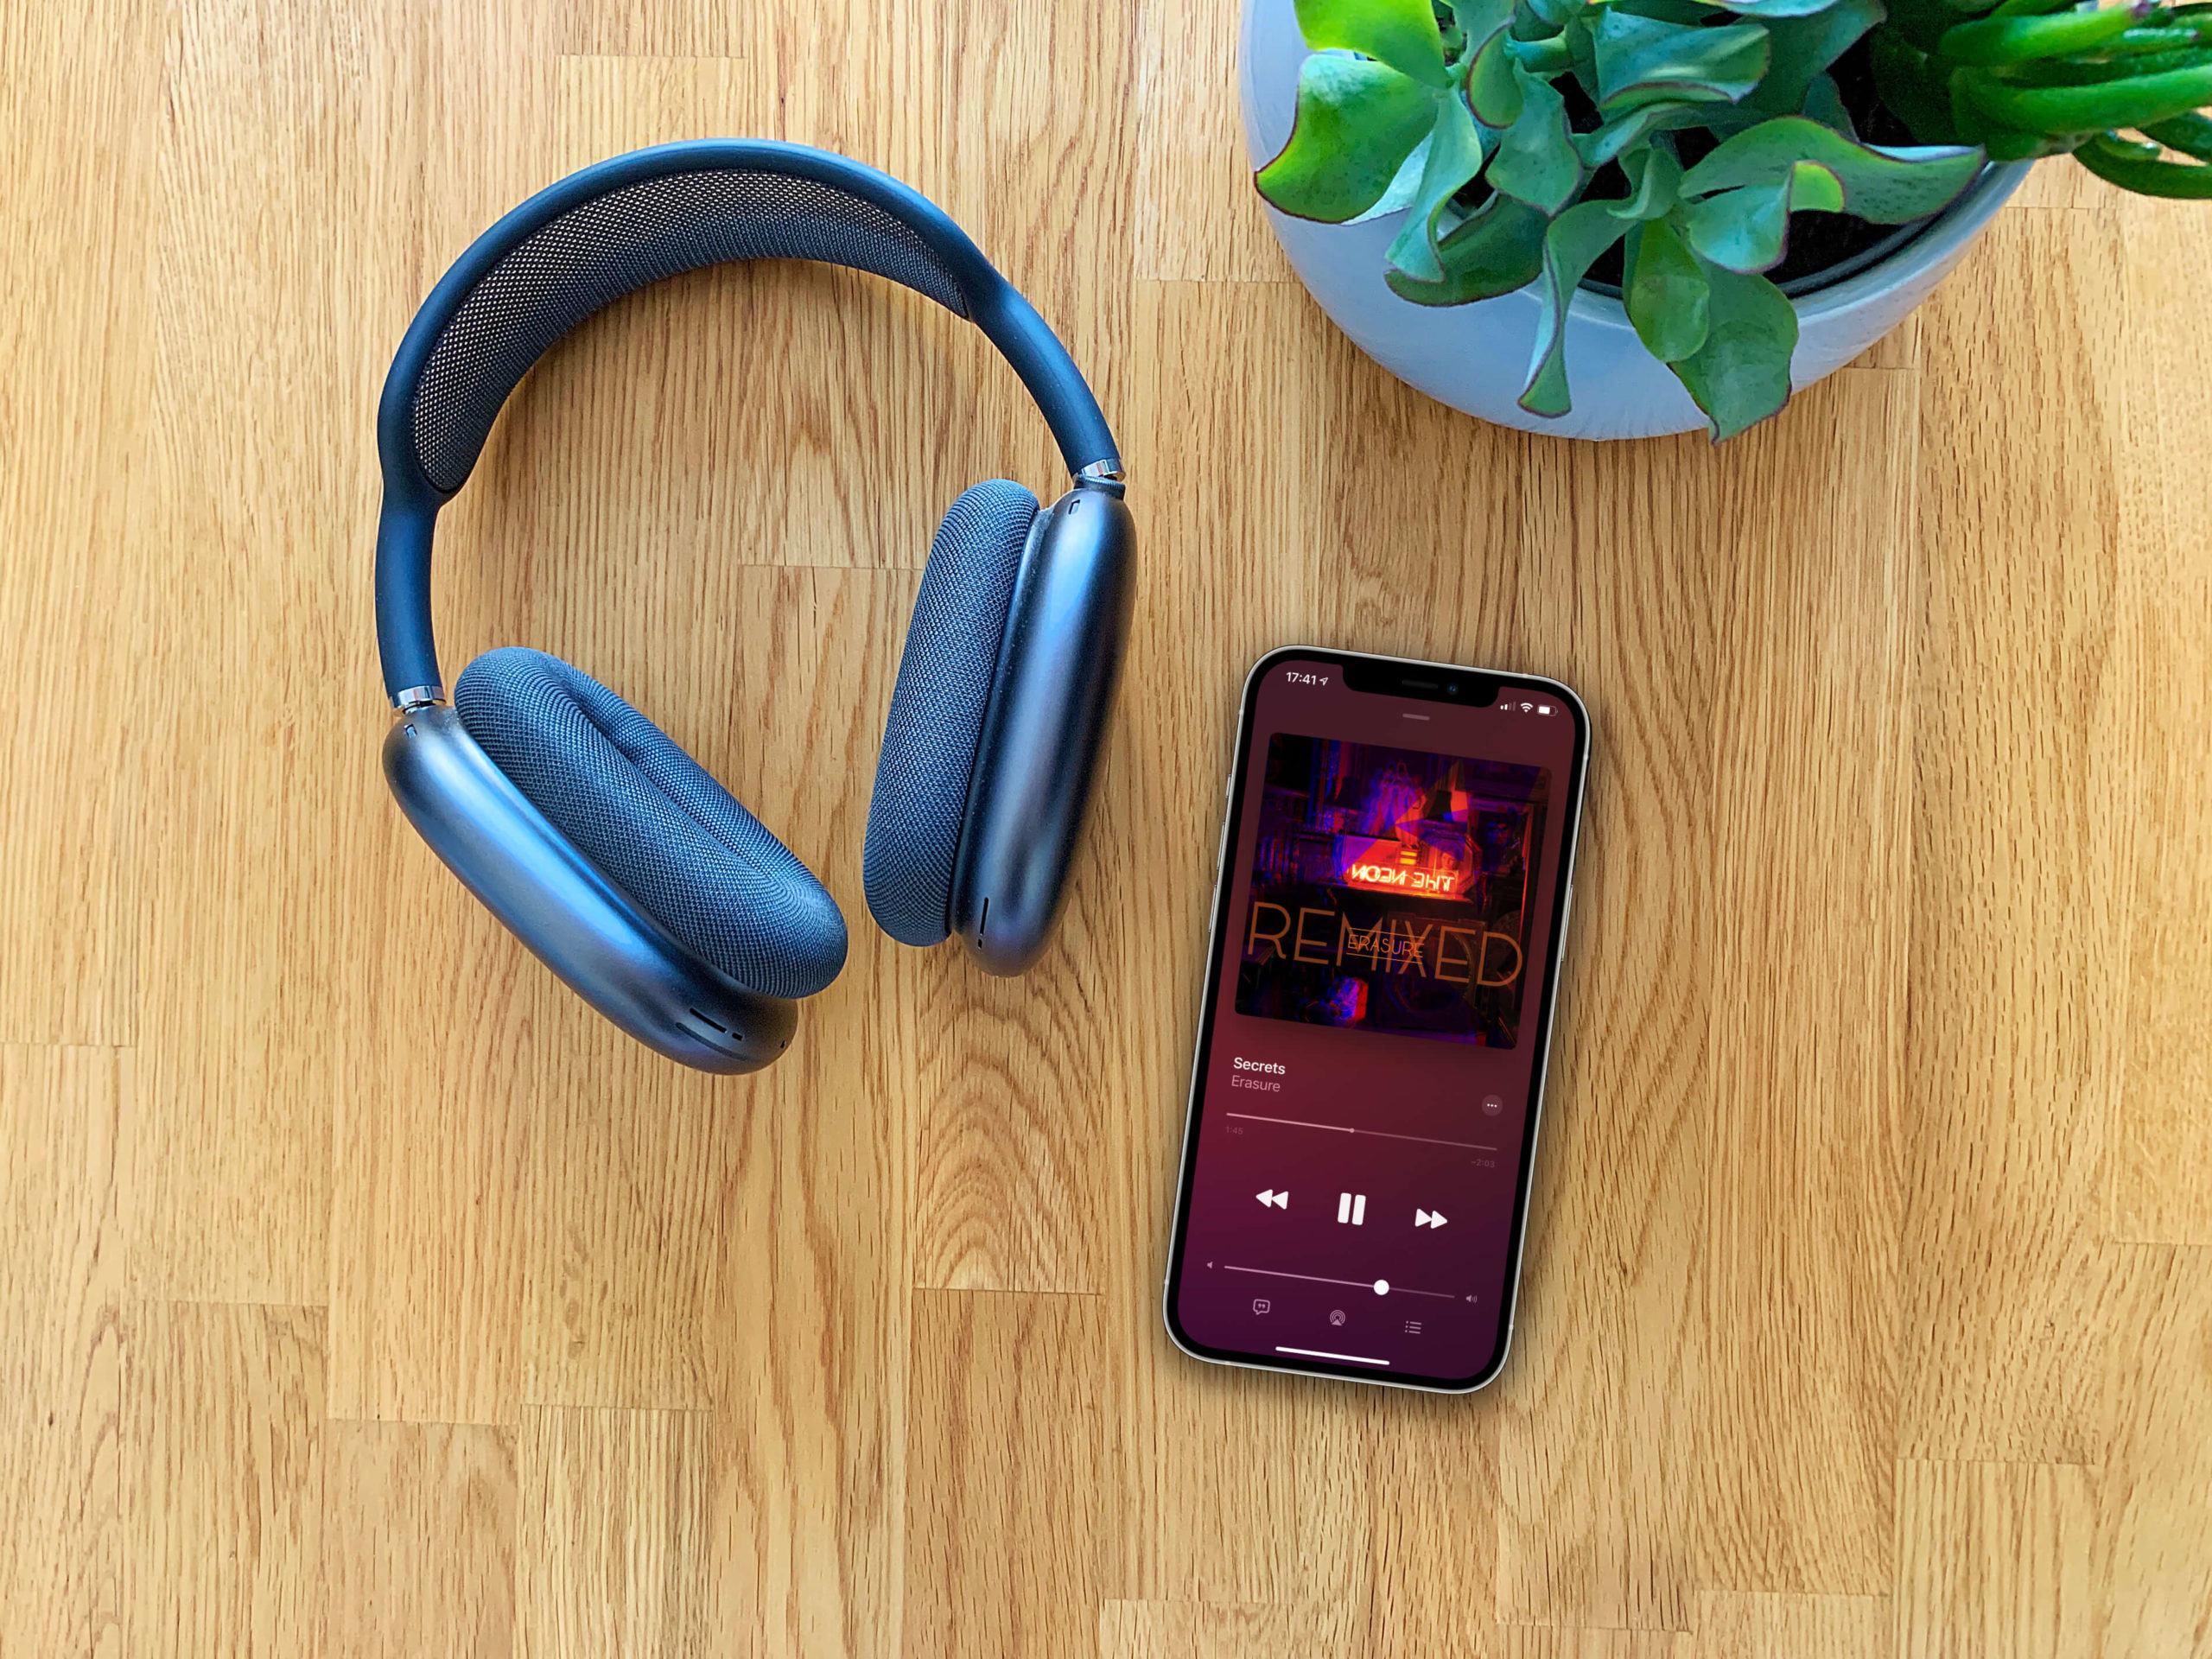 3D-Audio-Dolby-Atmos-und-Loseless-Audio-in-Apple-Music-scaled 3D-Audio, Dolby Atmos und Lossless Audio in Apple Music